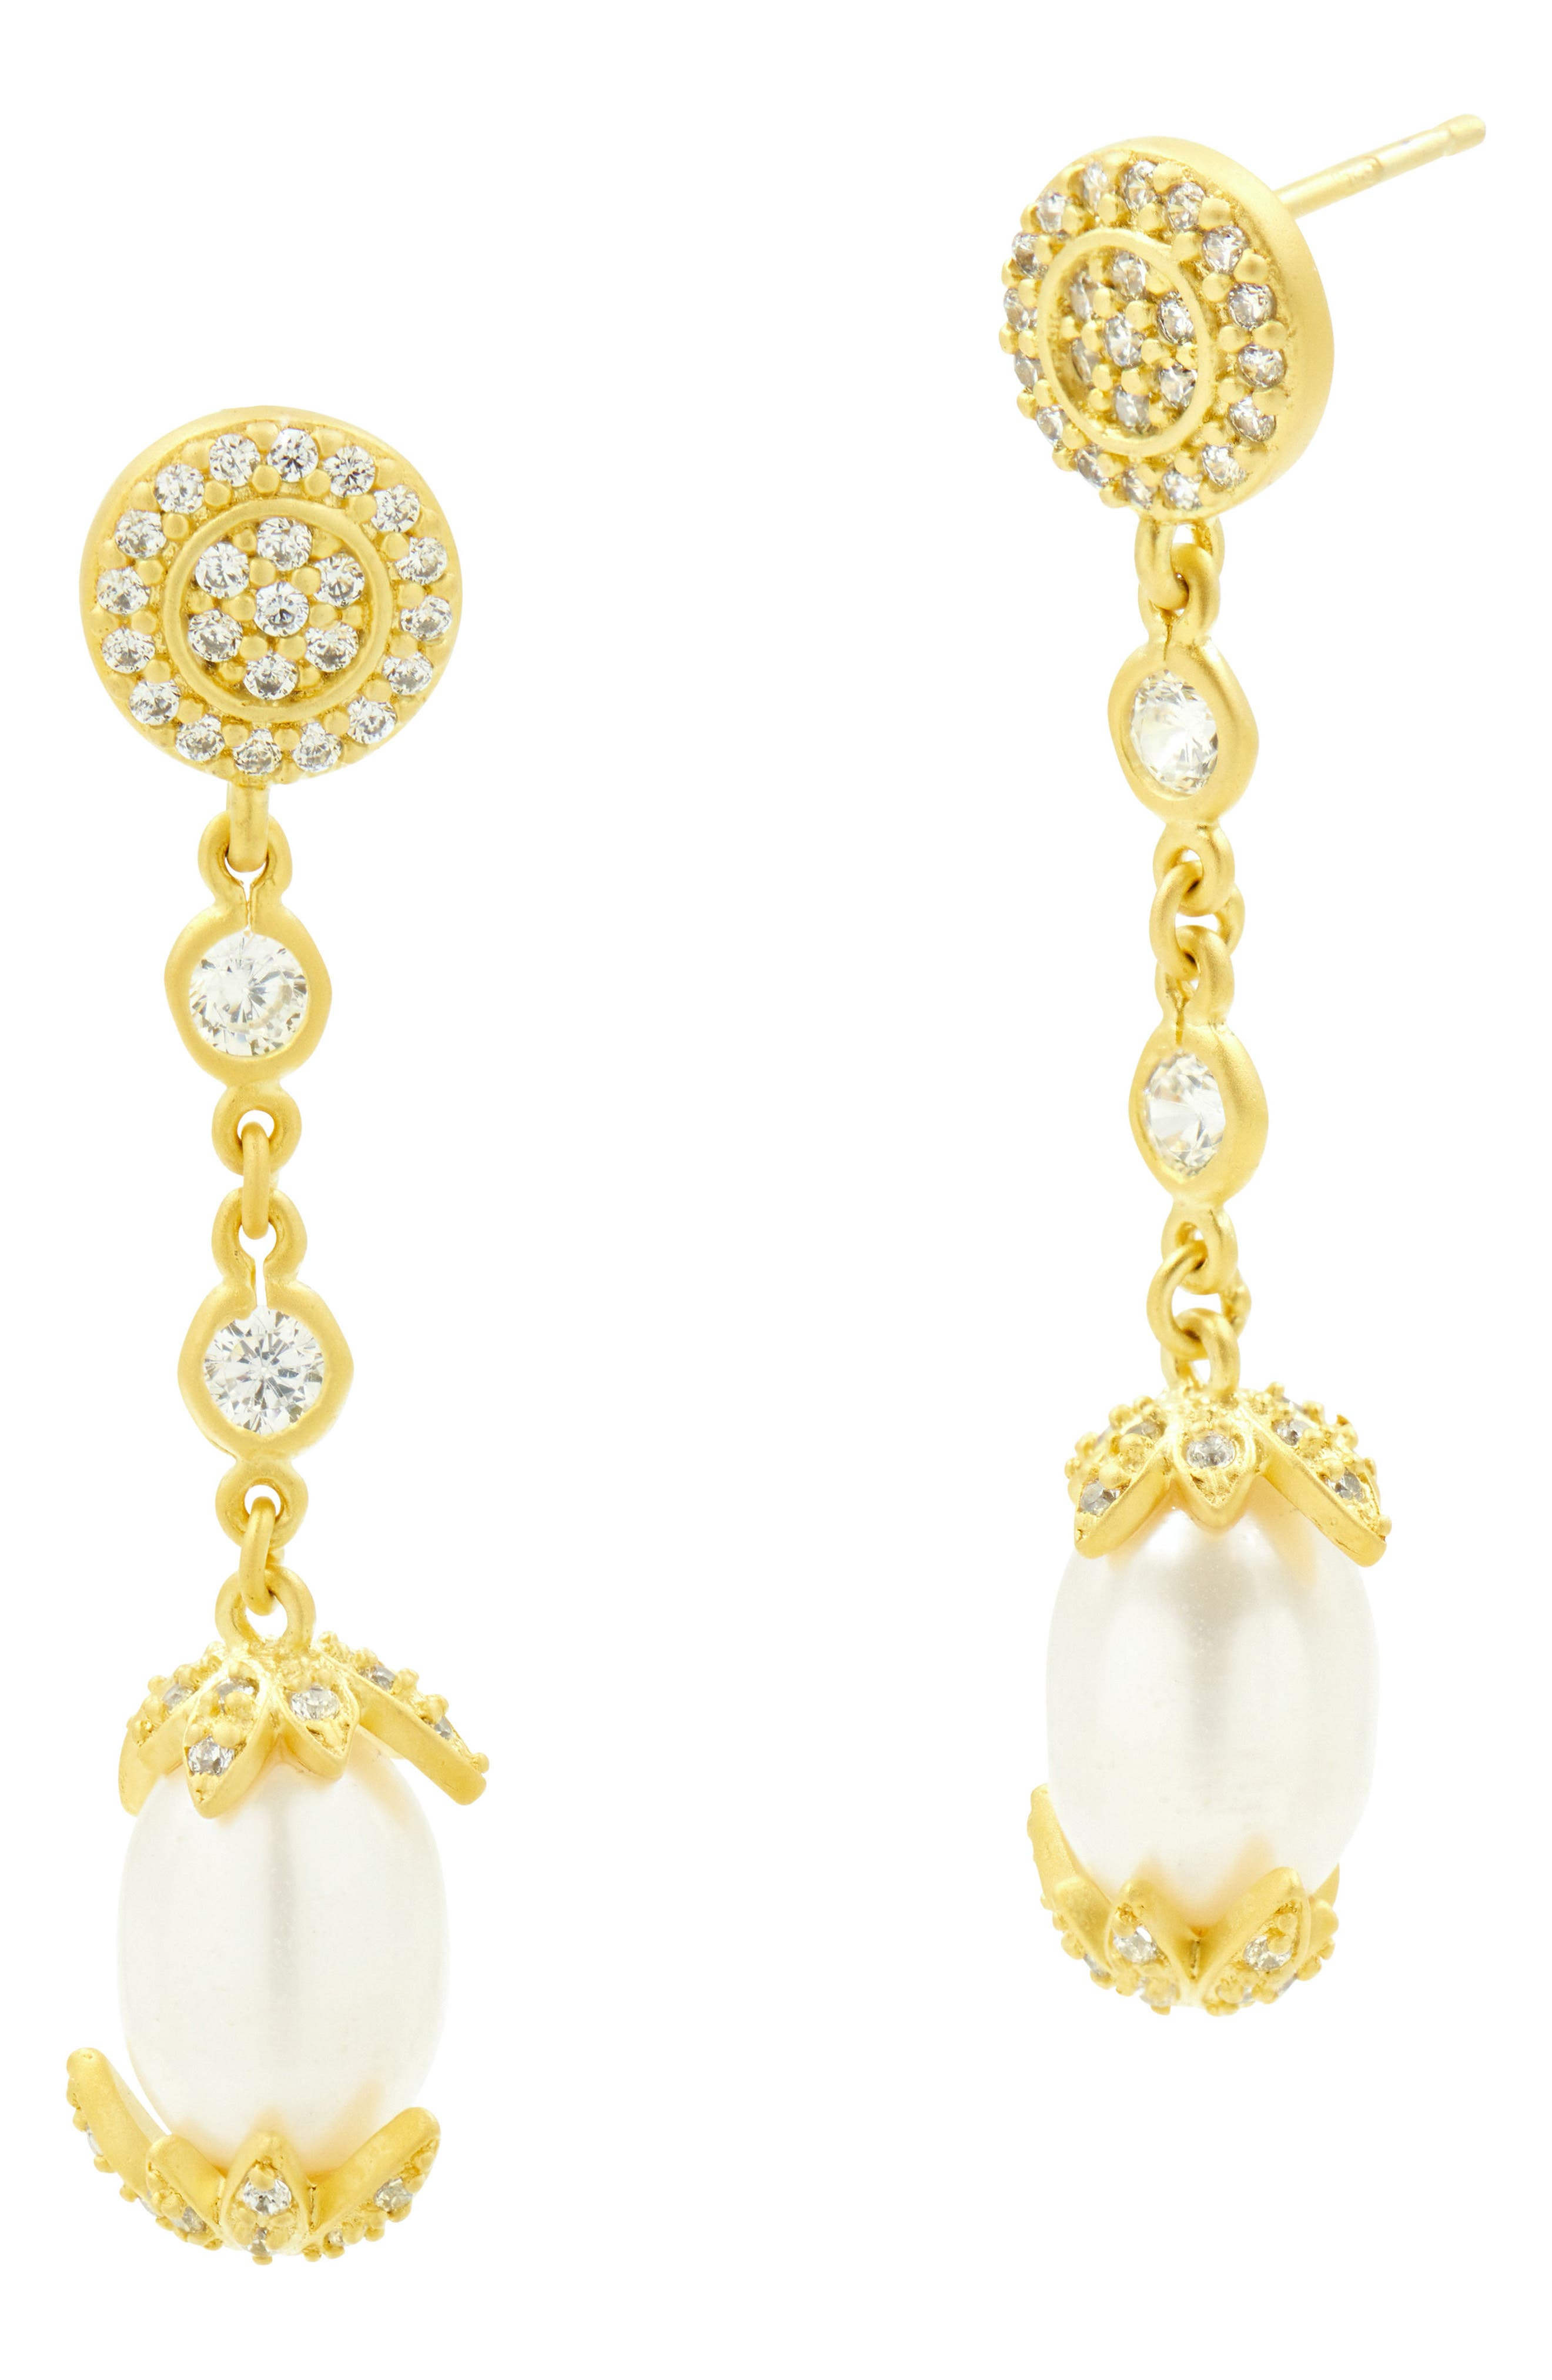 Audrey Linear Drop Earrings,                             Alternate thumbnail 3, color,                             Gold/ Clear